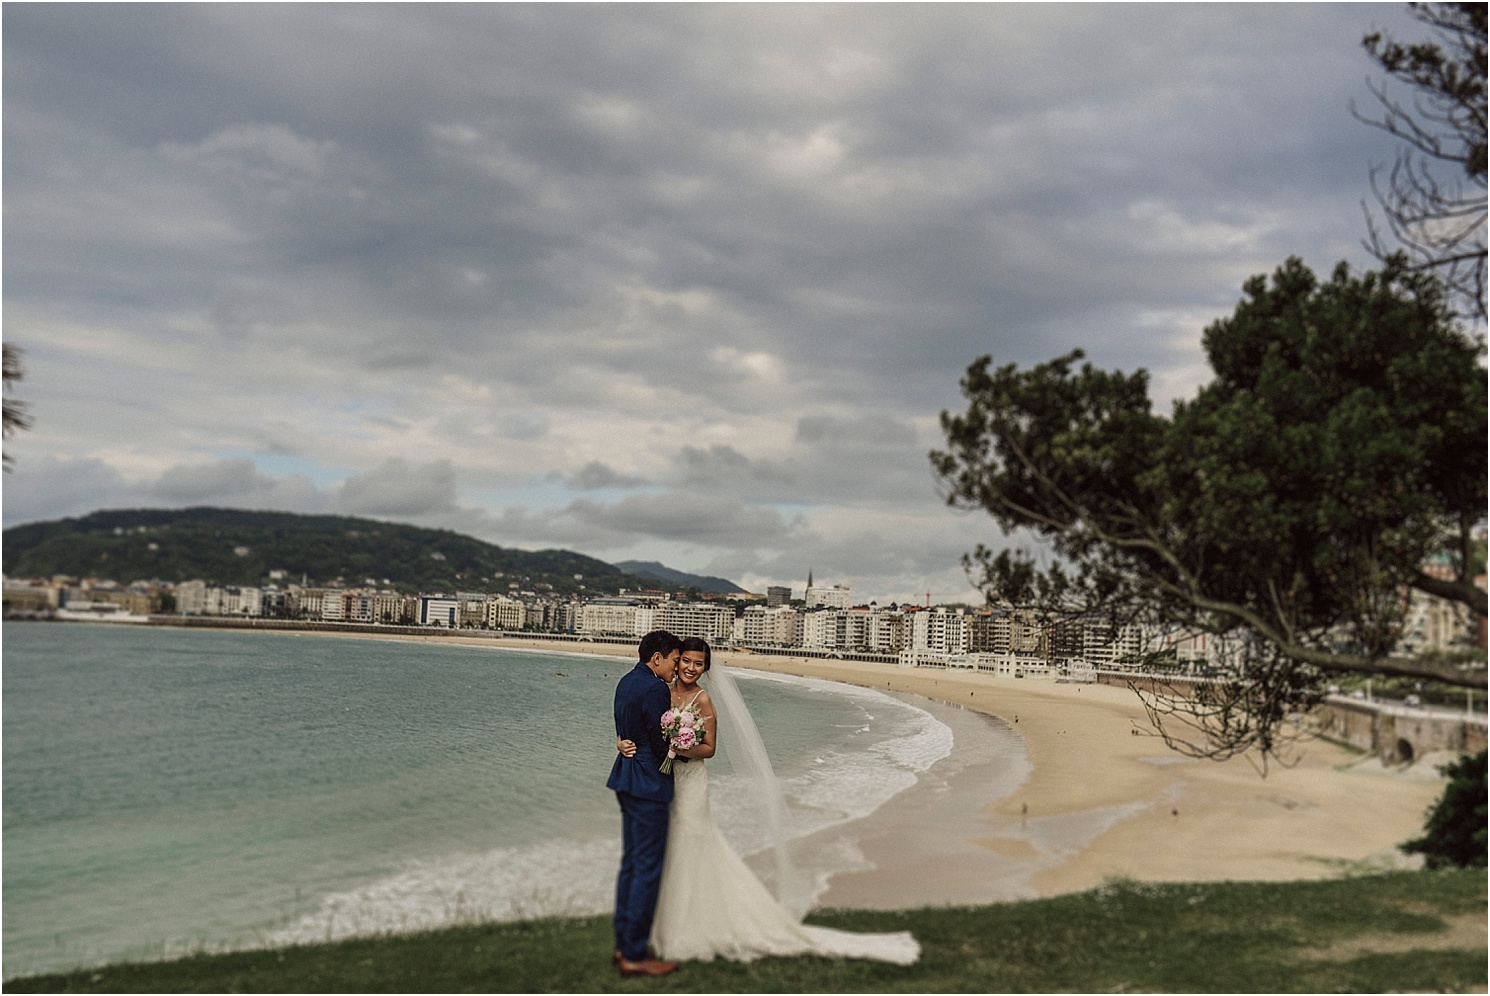 Destination wedding photographer San Sebastian - Destiantion wedding Donostia San Sebastián - Best photographer Basque country_-47.jpg